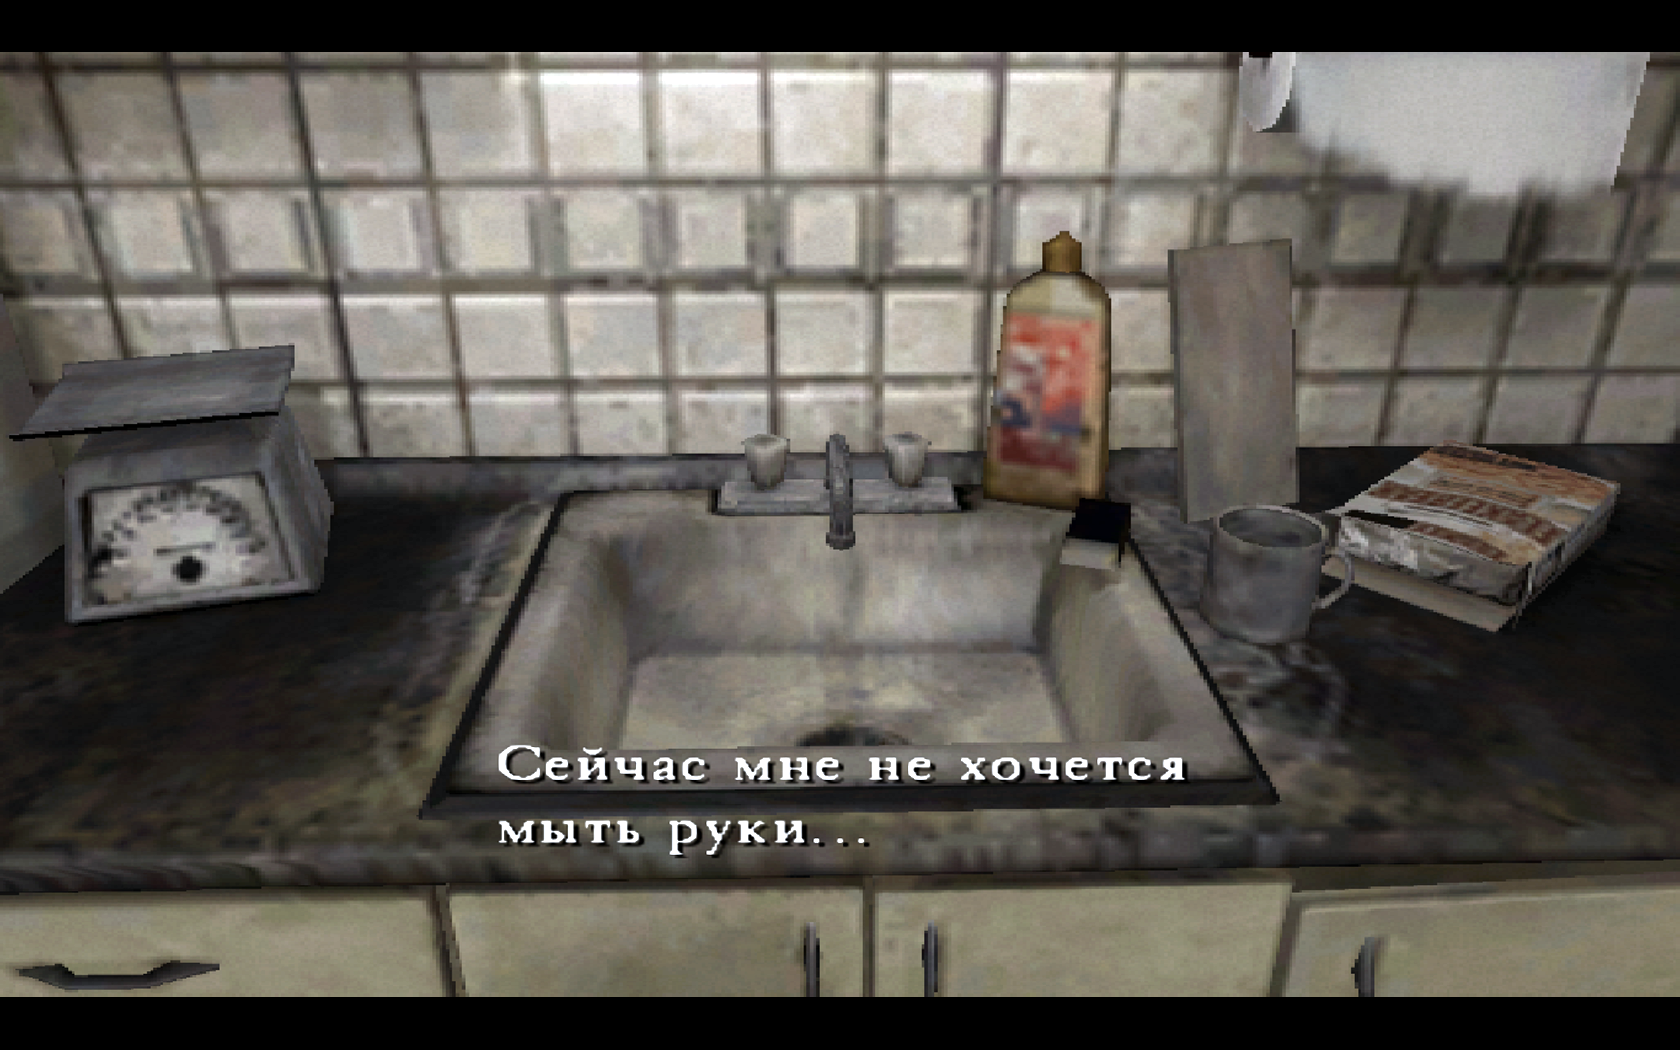 SILENT HILL 4_The Room 07.10.2020 17_08_57.png